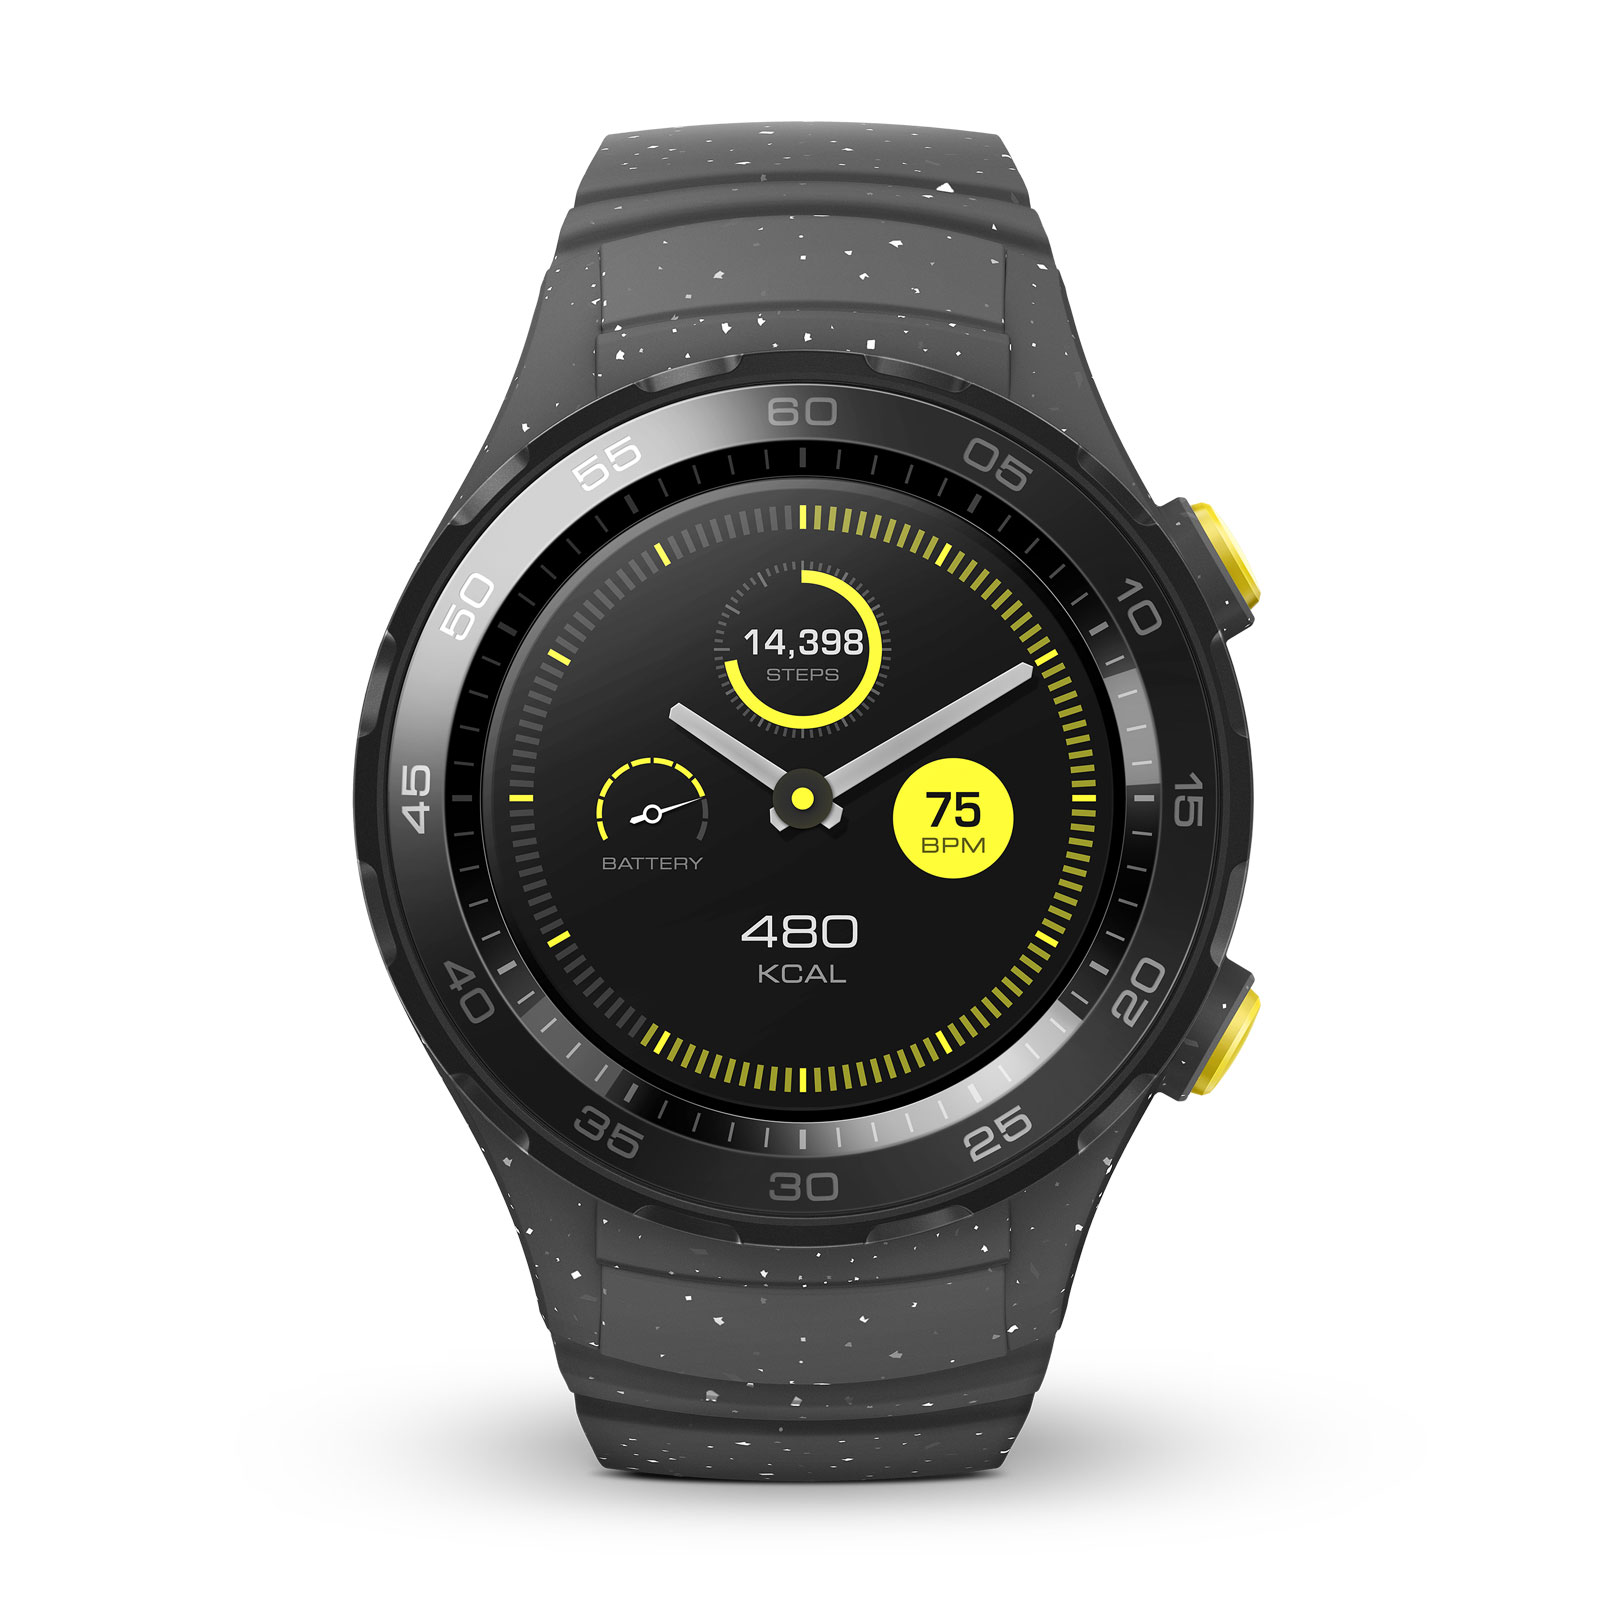 Montre connectée Huawei Watch 2 Sport Gris Montre connectée IP68 - Wi-Fi/Bluetooth/NFC - GPS - Cardio-fréquencemètre - Android Wear 2.0 - iOS/Android